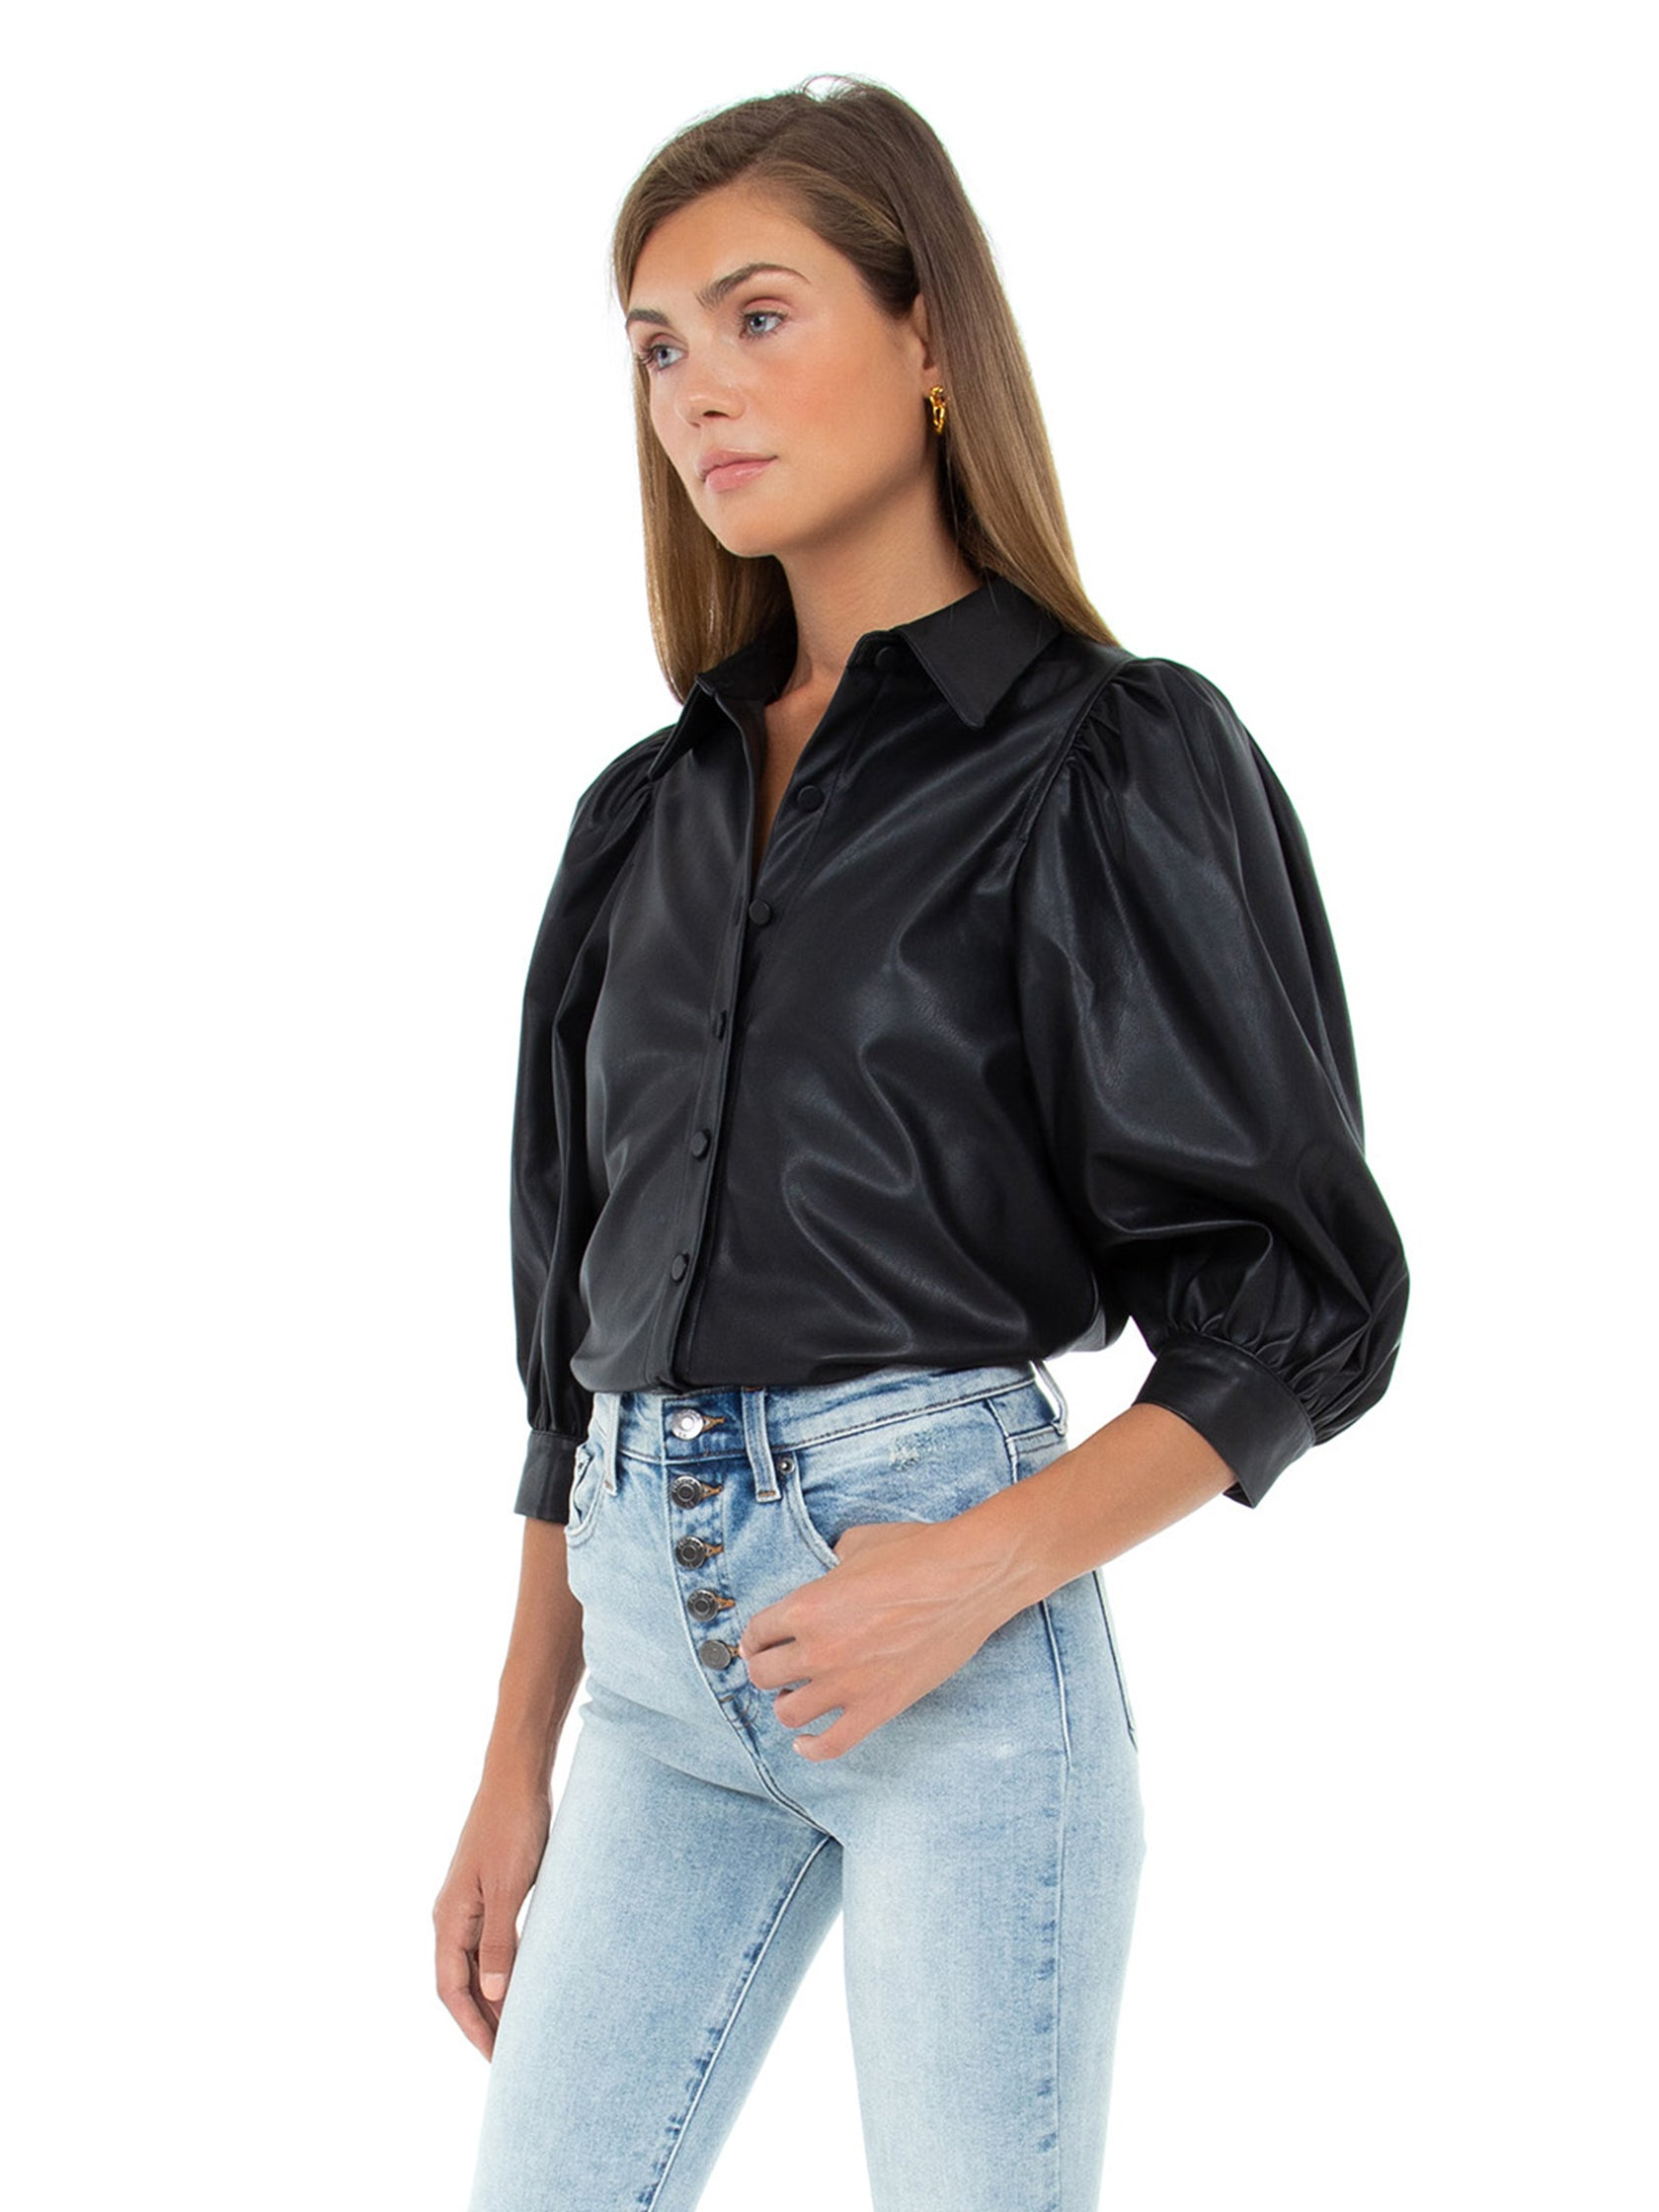 Women outfit in a top rental from PISTOLA called Adina Puff Sleeve Shirt